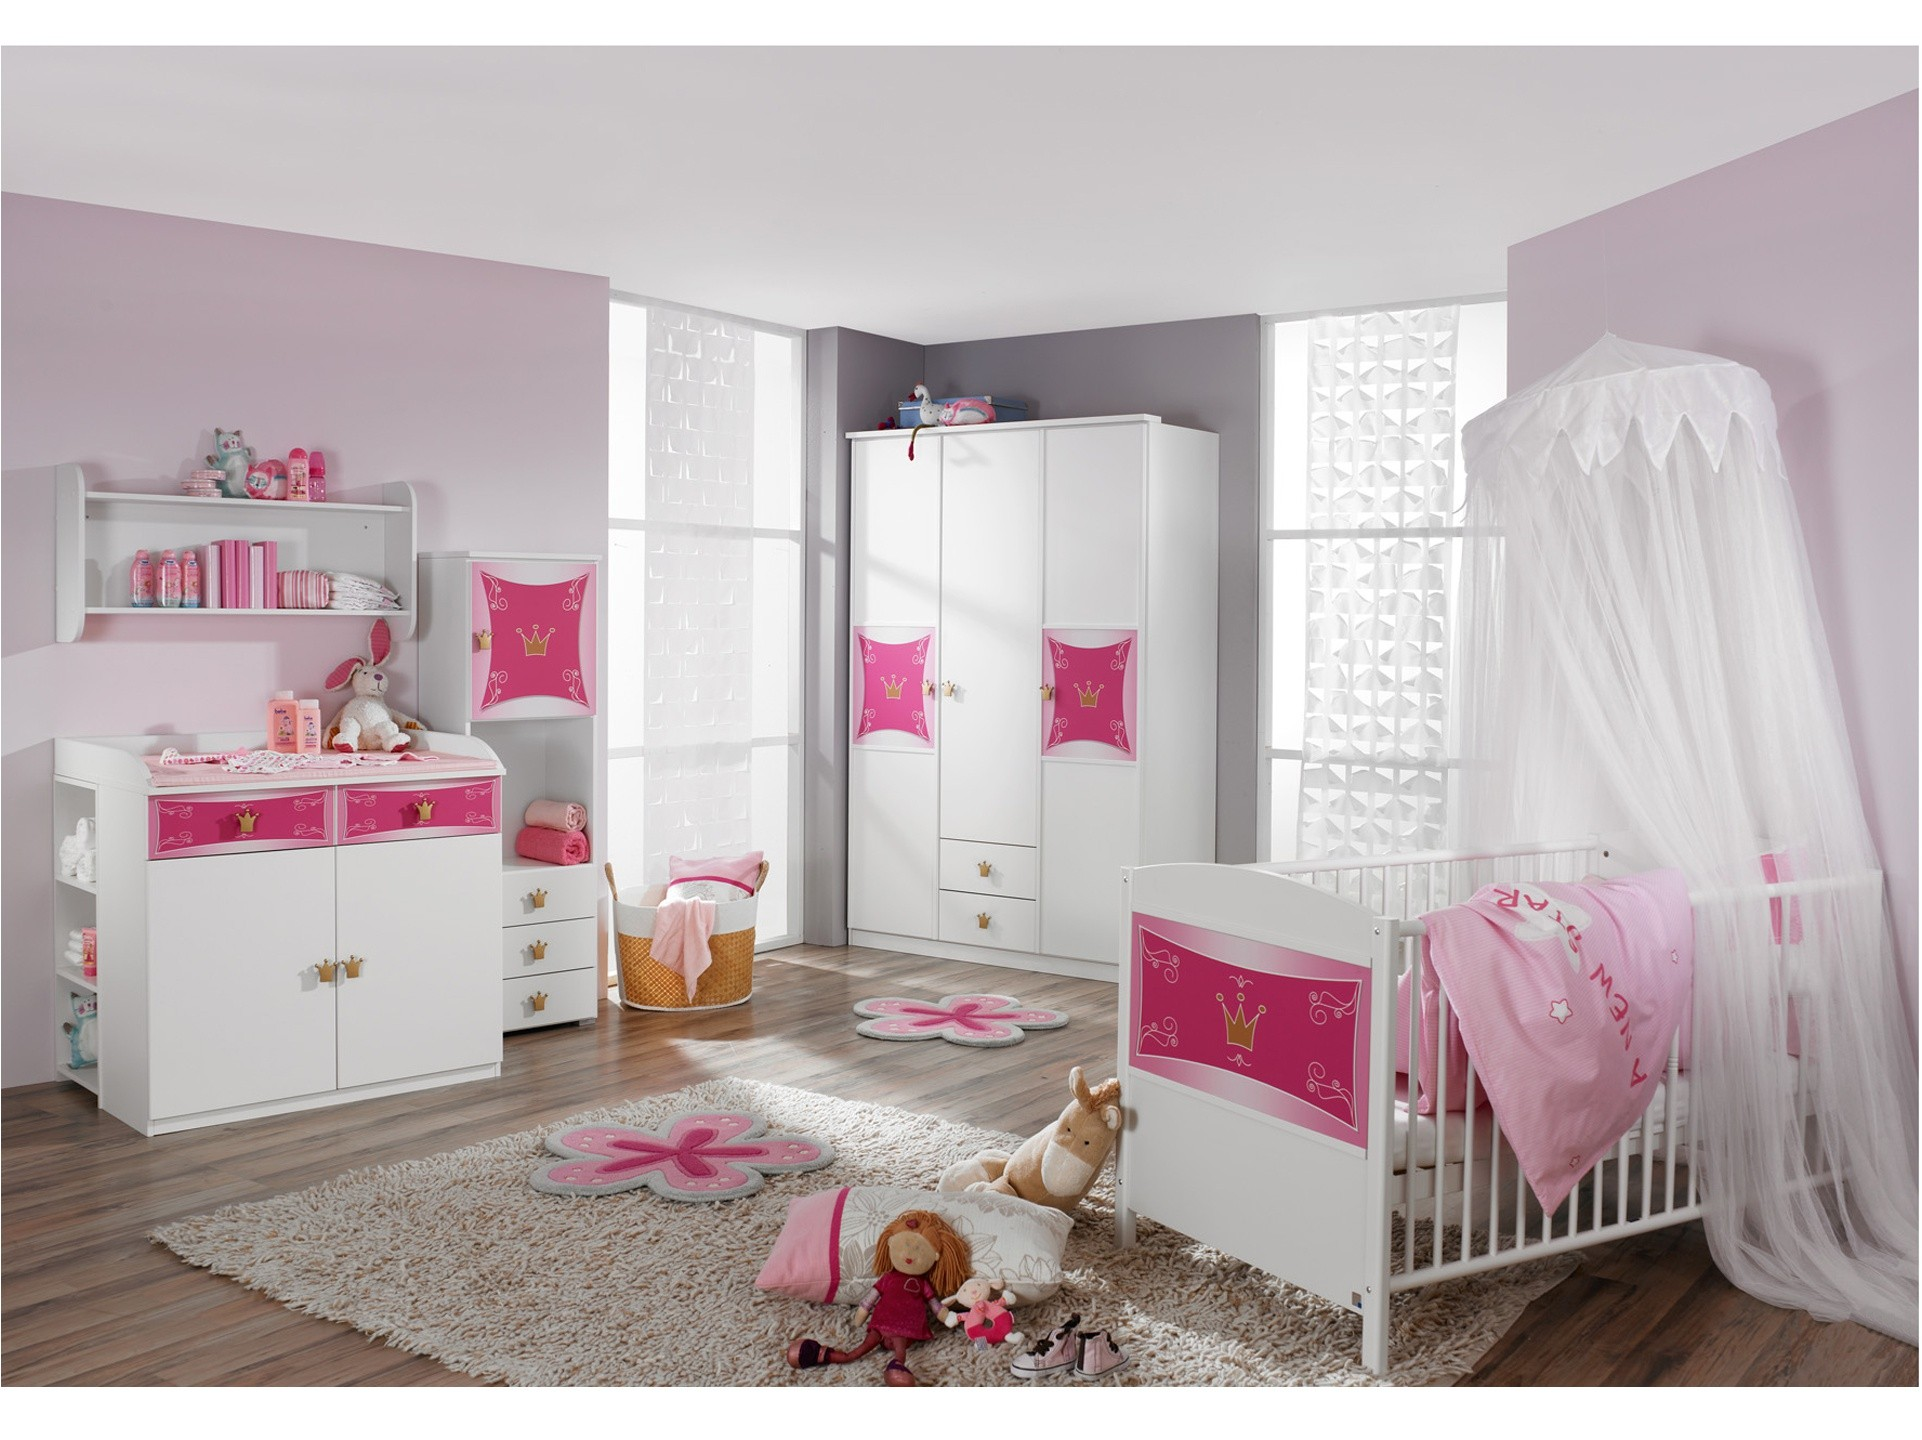 Chambre compl te b b kitty id es de tricot gratuit - Decoration hello kitty chambre bebe ...